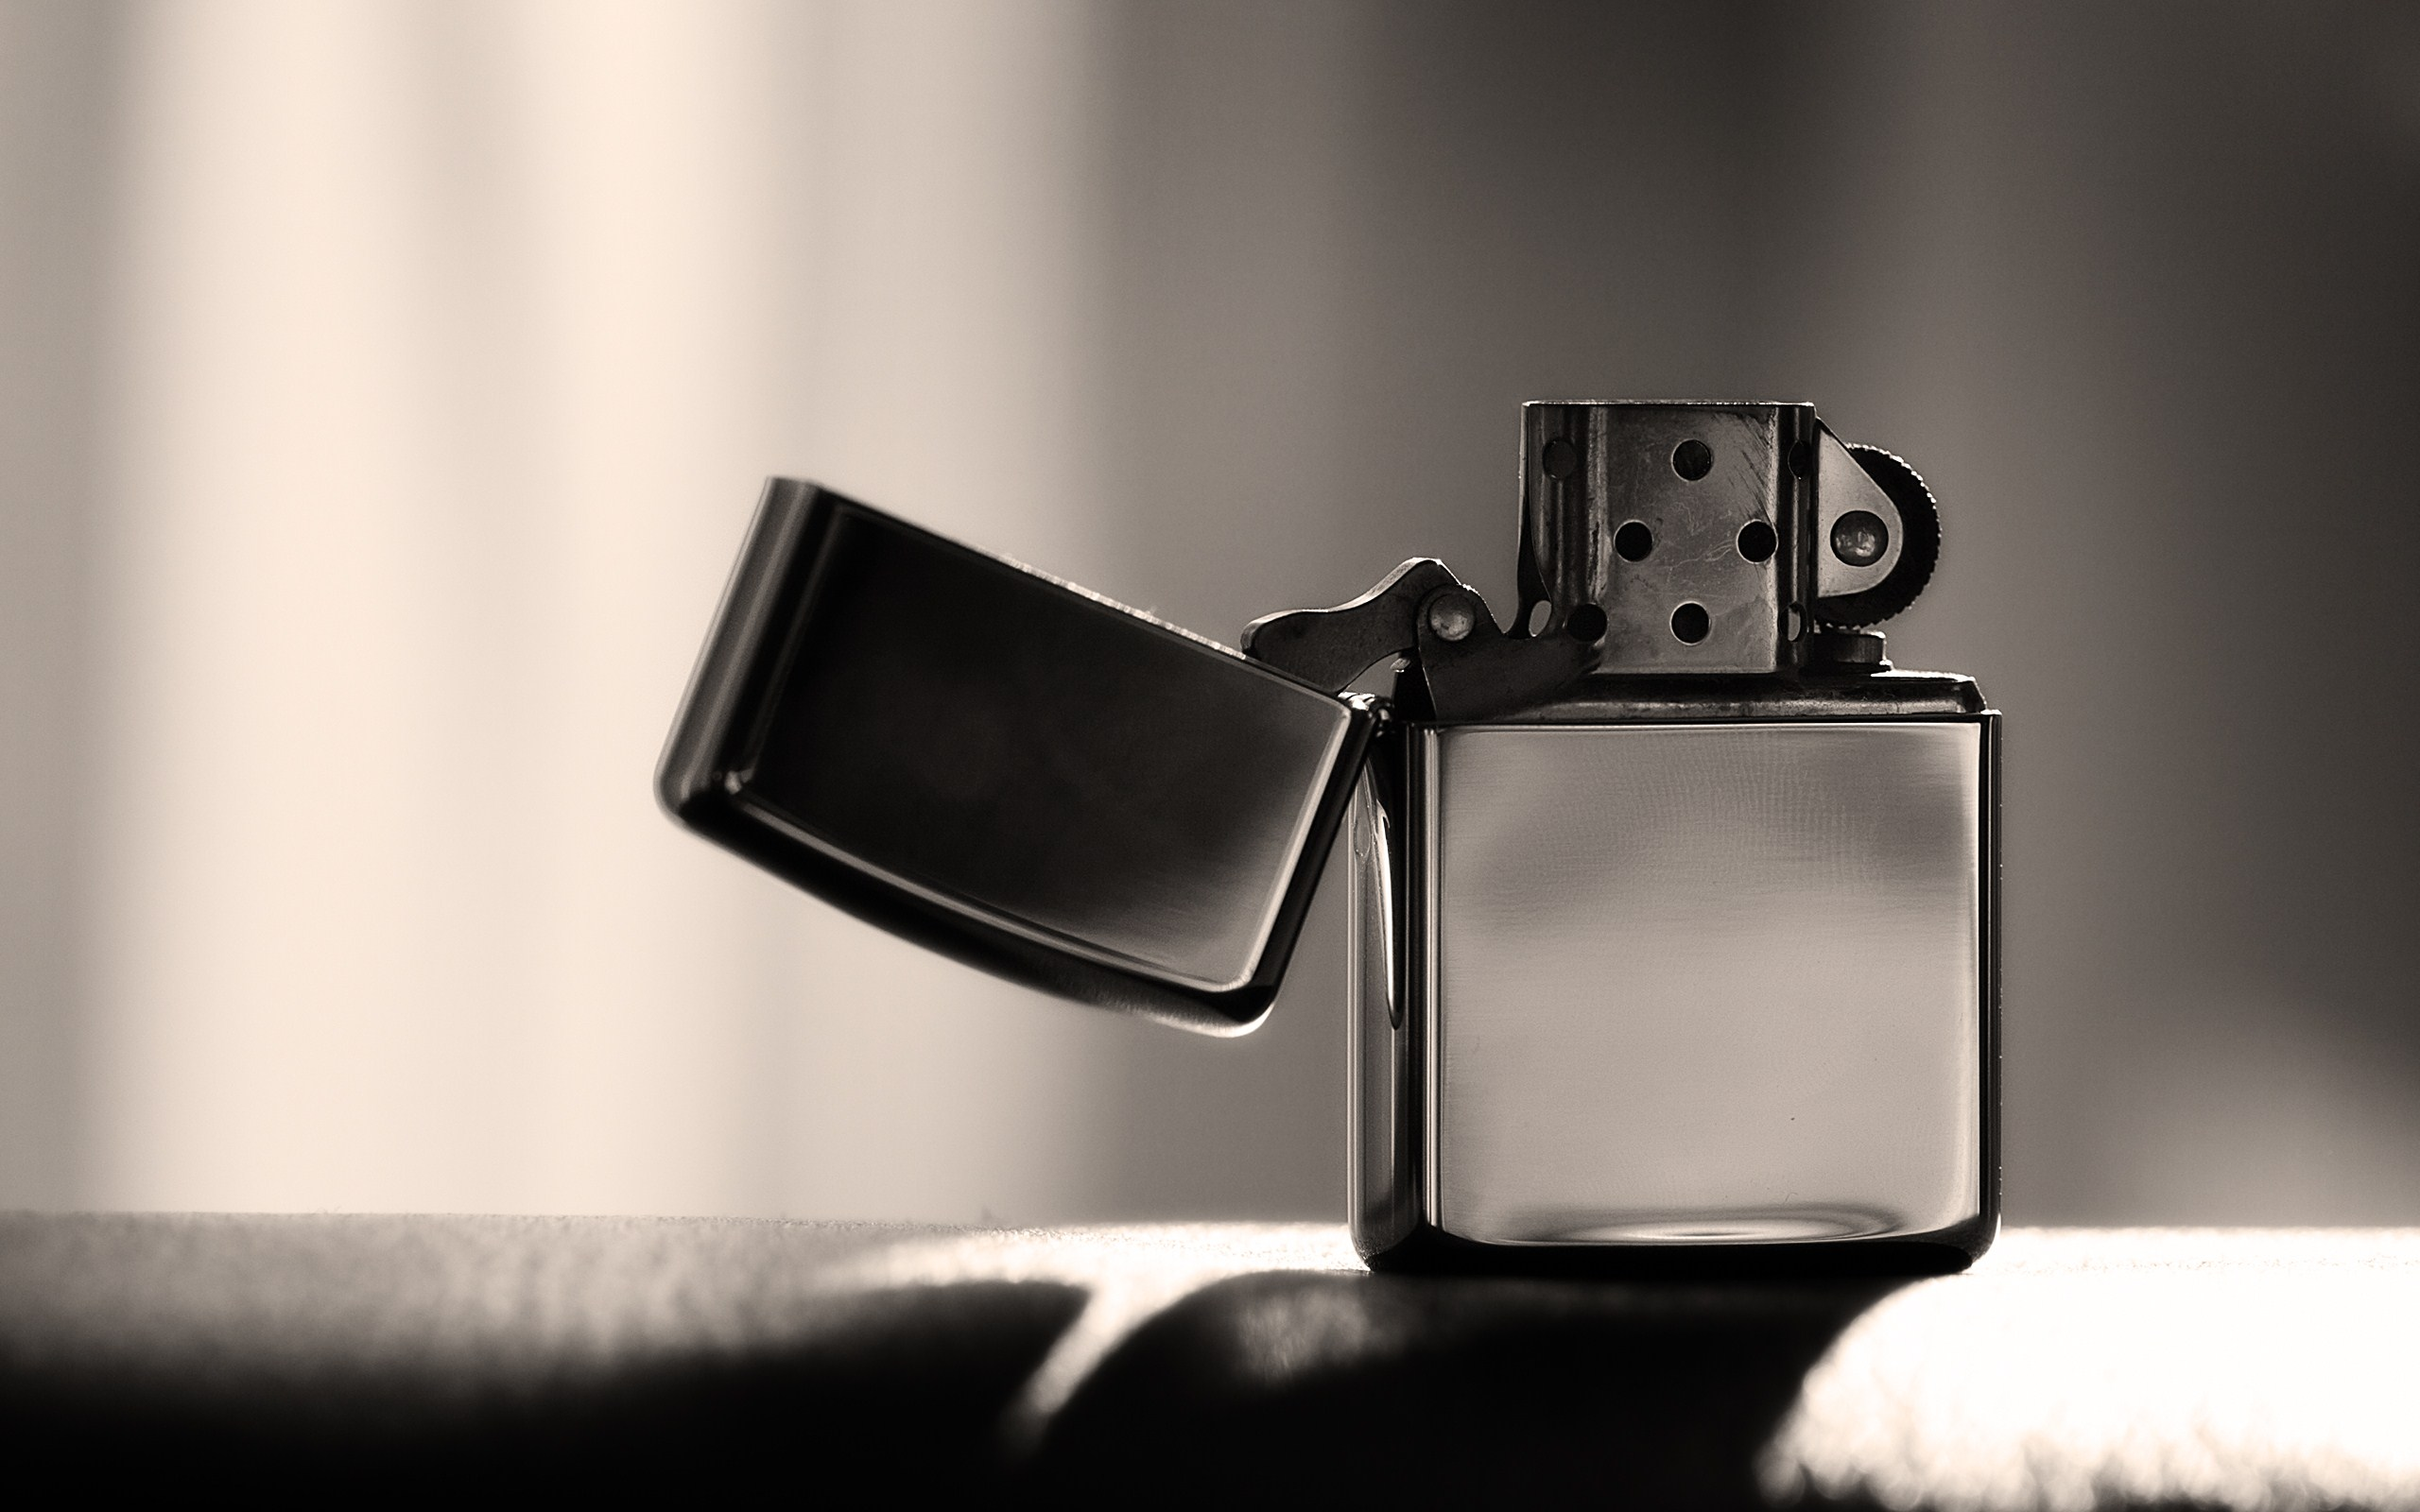 zippo-lighter-wallpaper